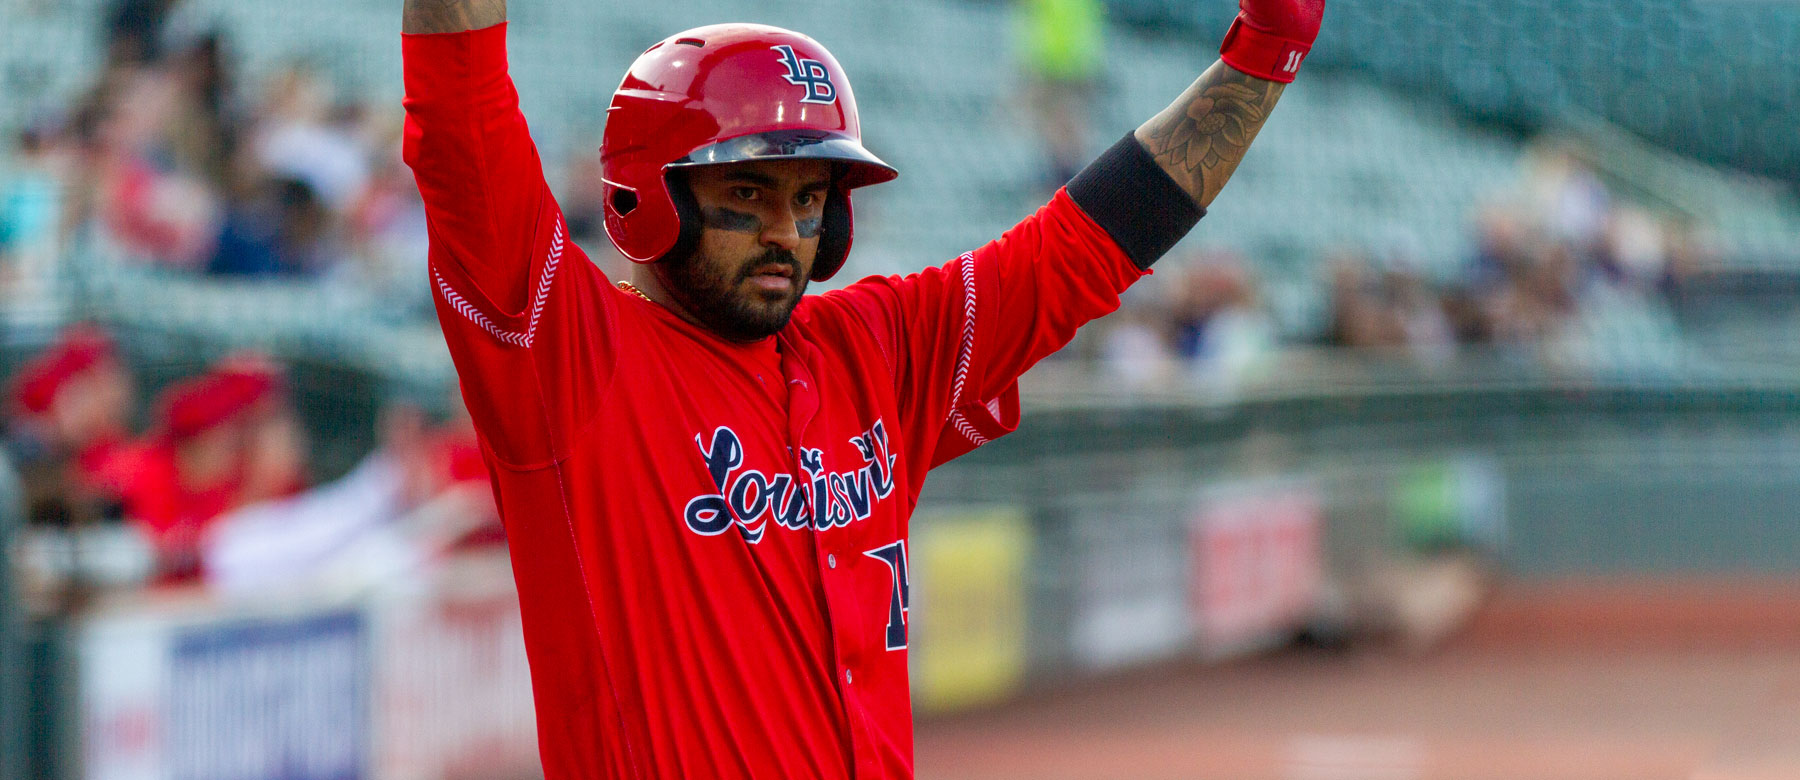 Reds call up Christian Colon from Triple-A Louisville | redsminorleagues.com